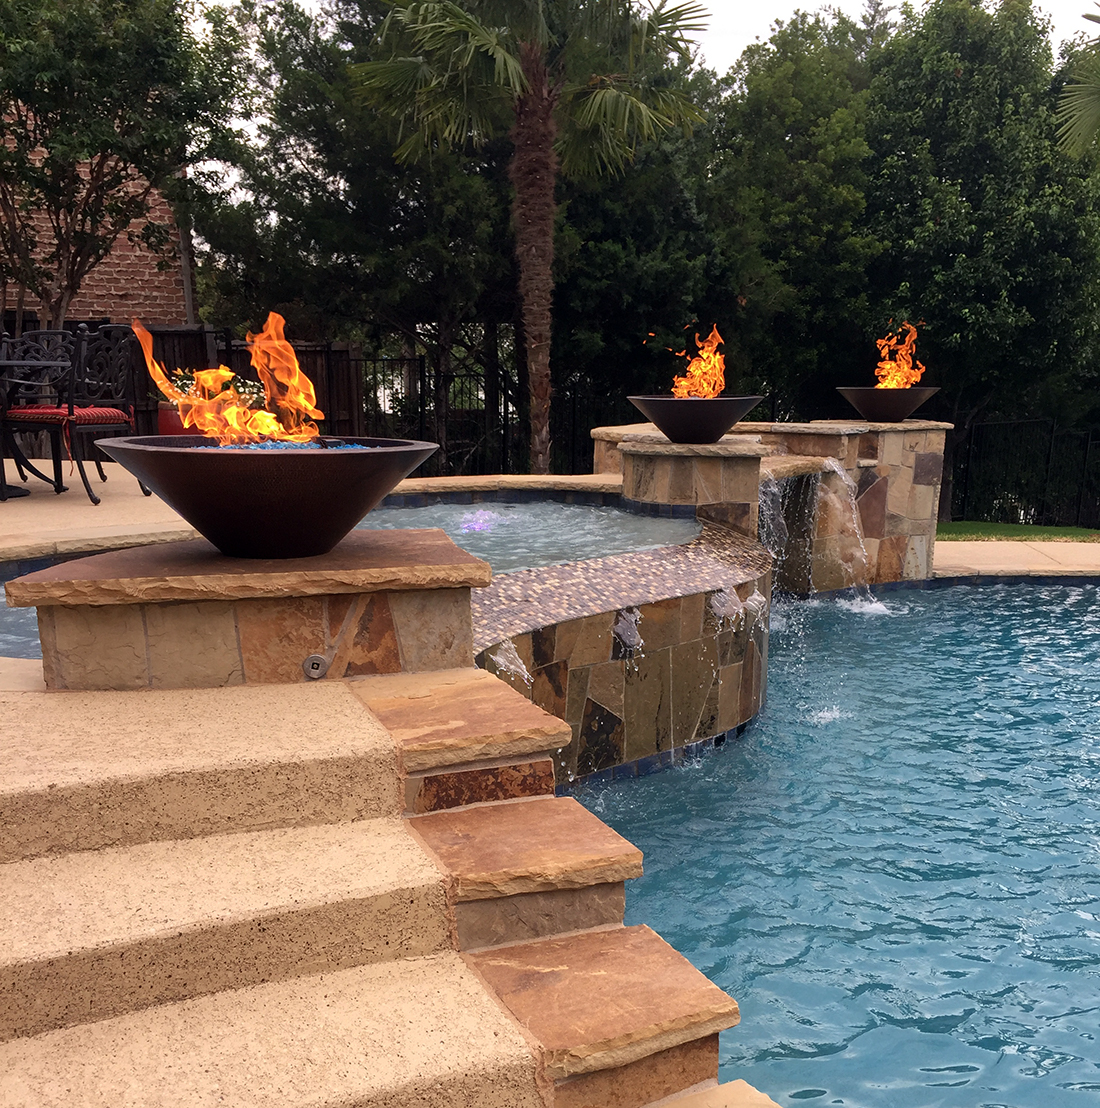 bmr pool and patio p3q.jpg